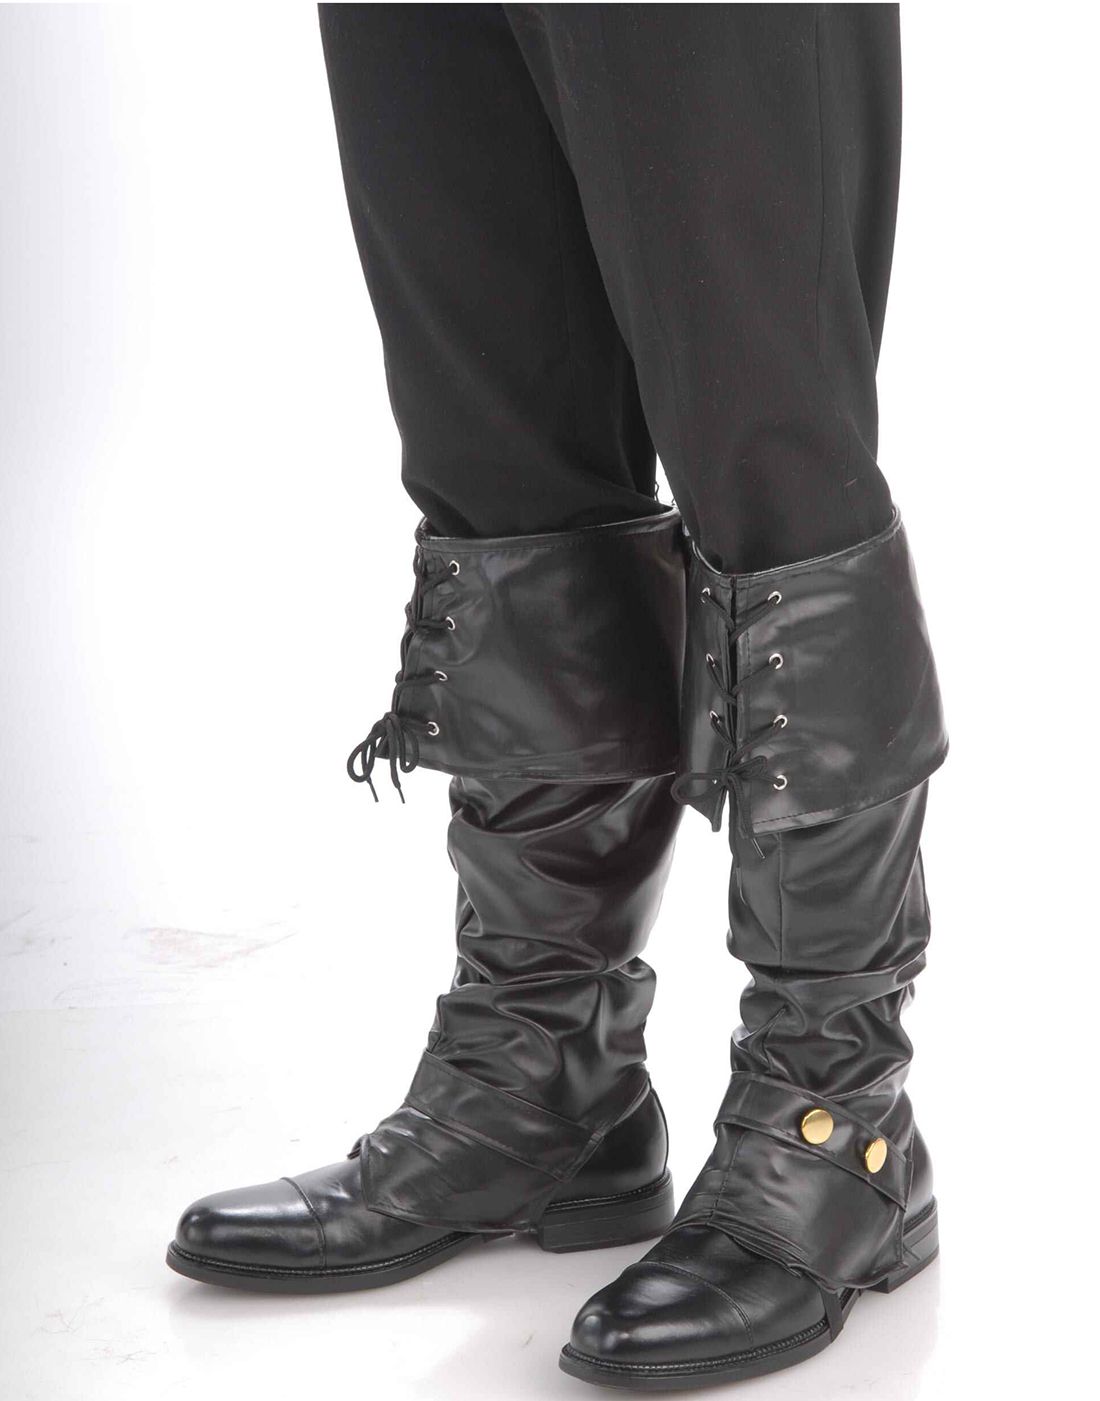 Details about Deluxe Pirate Renaissance Adult Mens Halloween Costume Black  Boot Top Covers